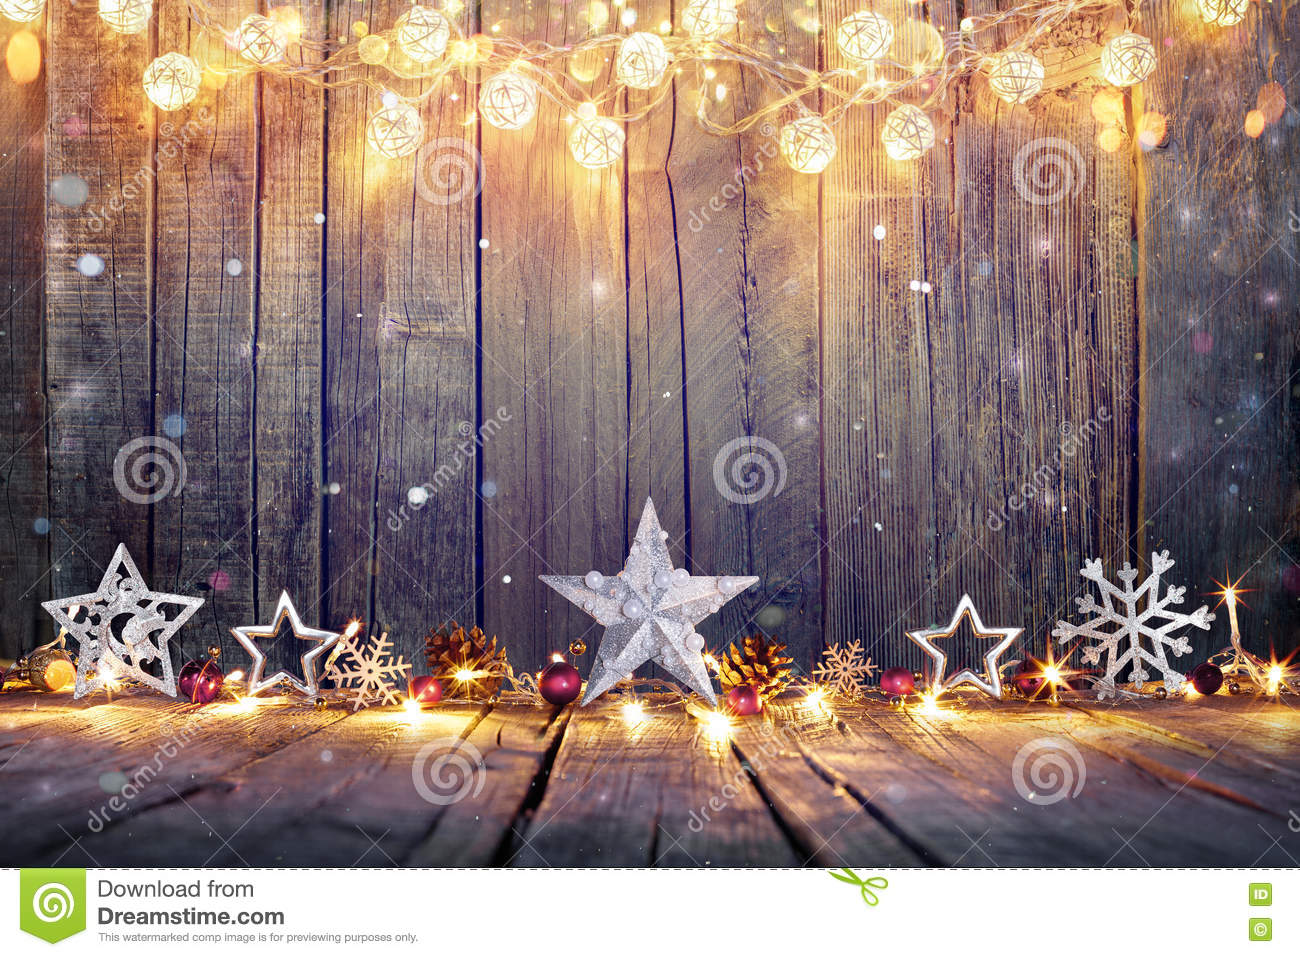 Vintage Christmas Decoration With Stars And Lights Stock